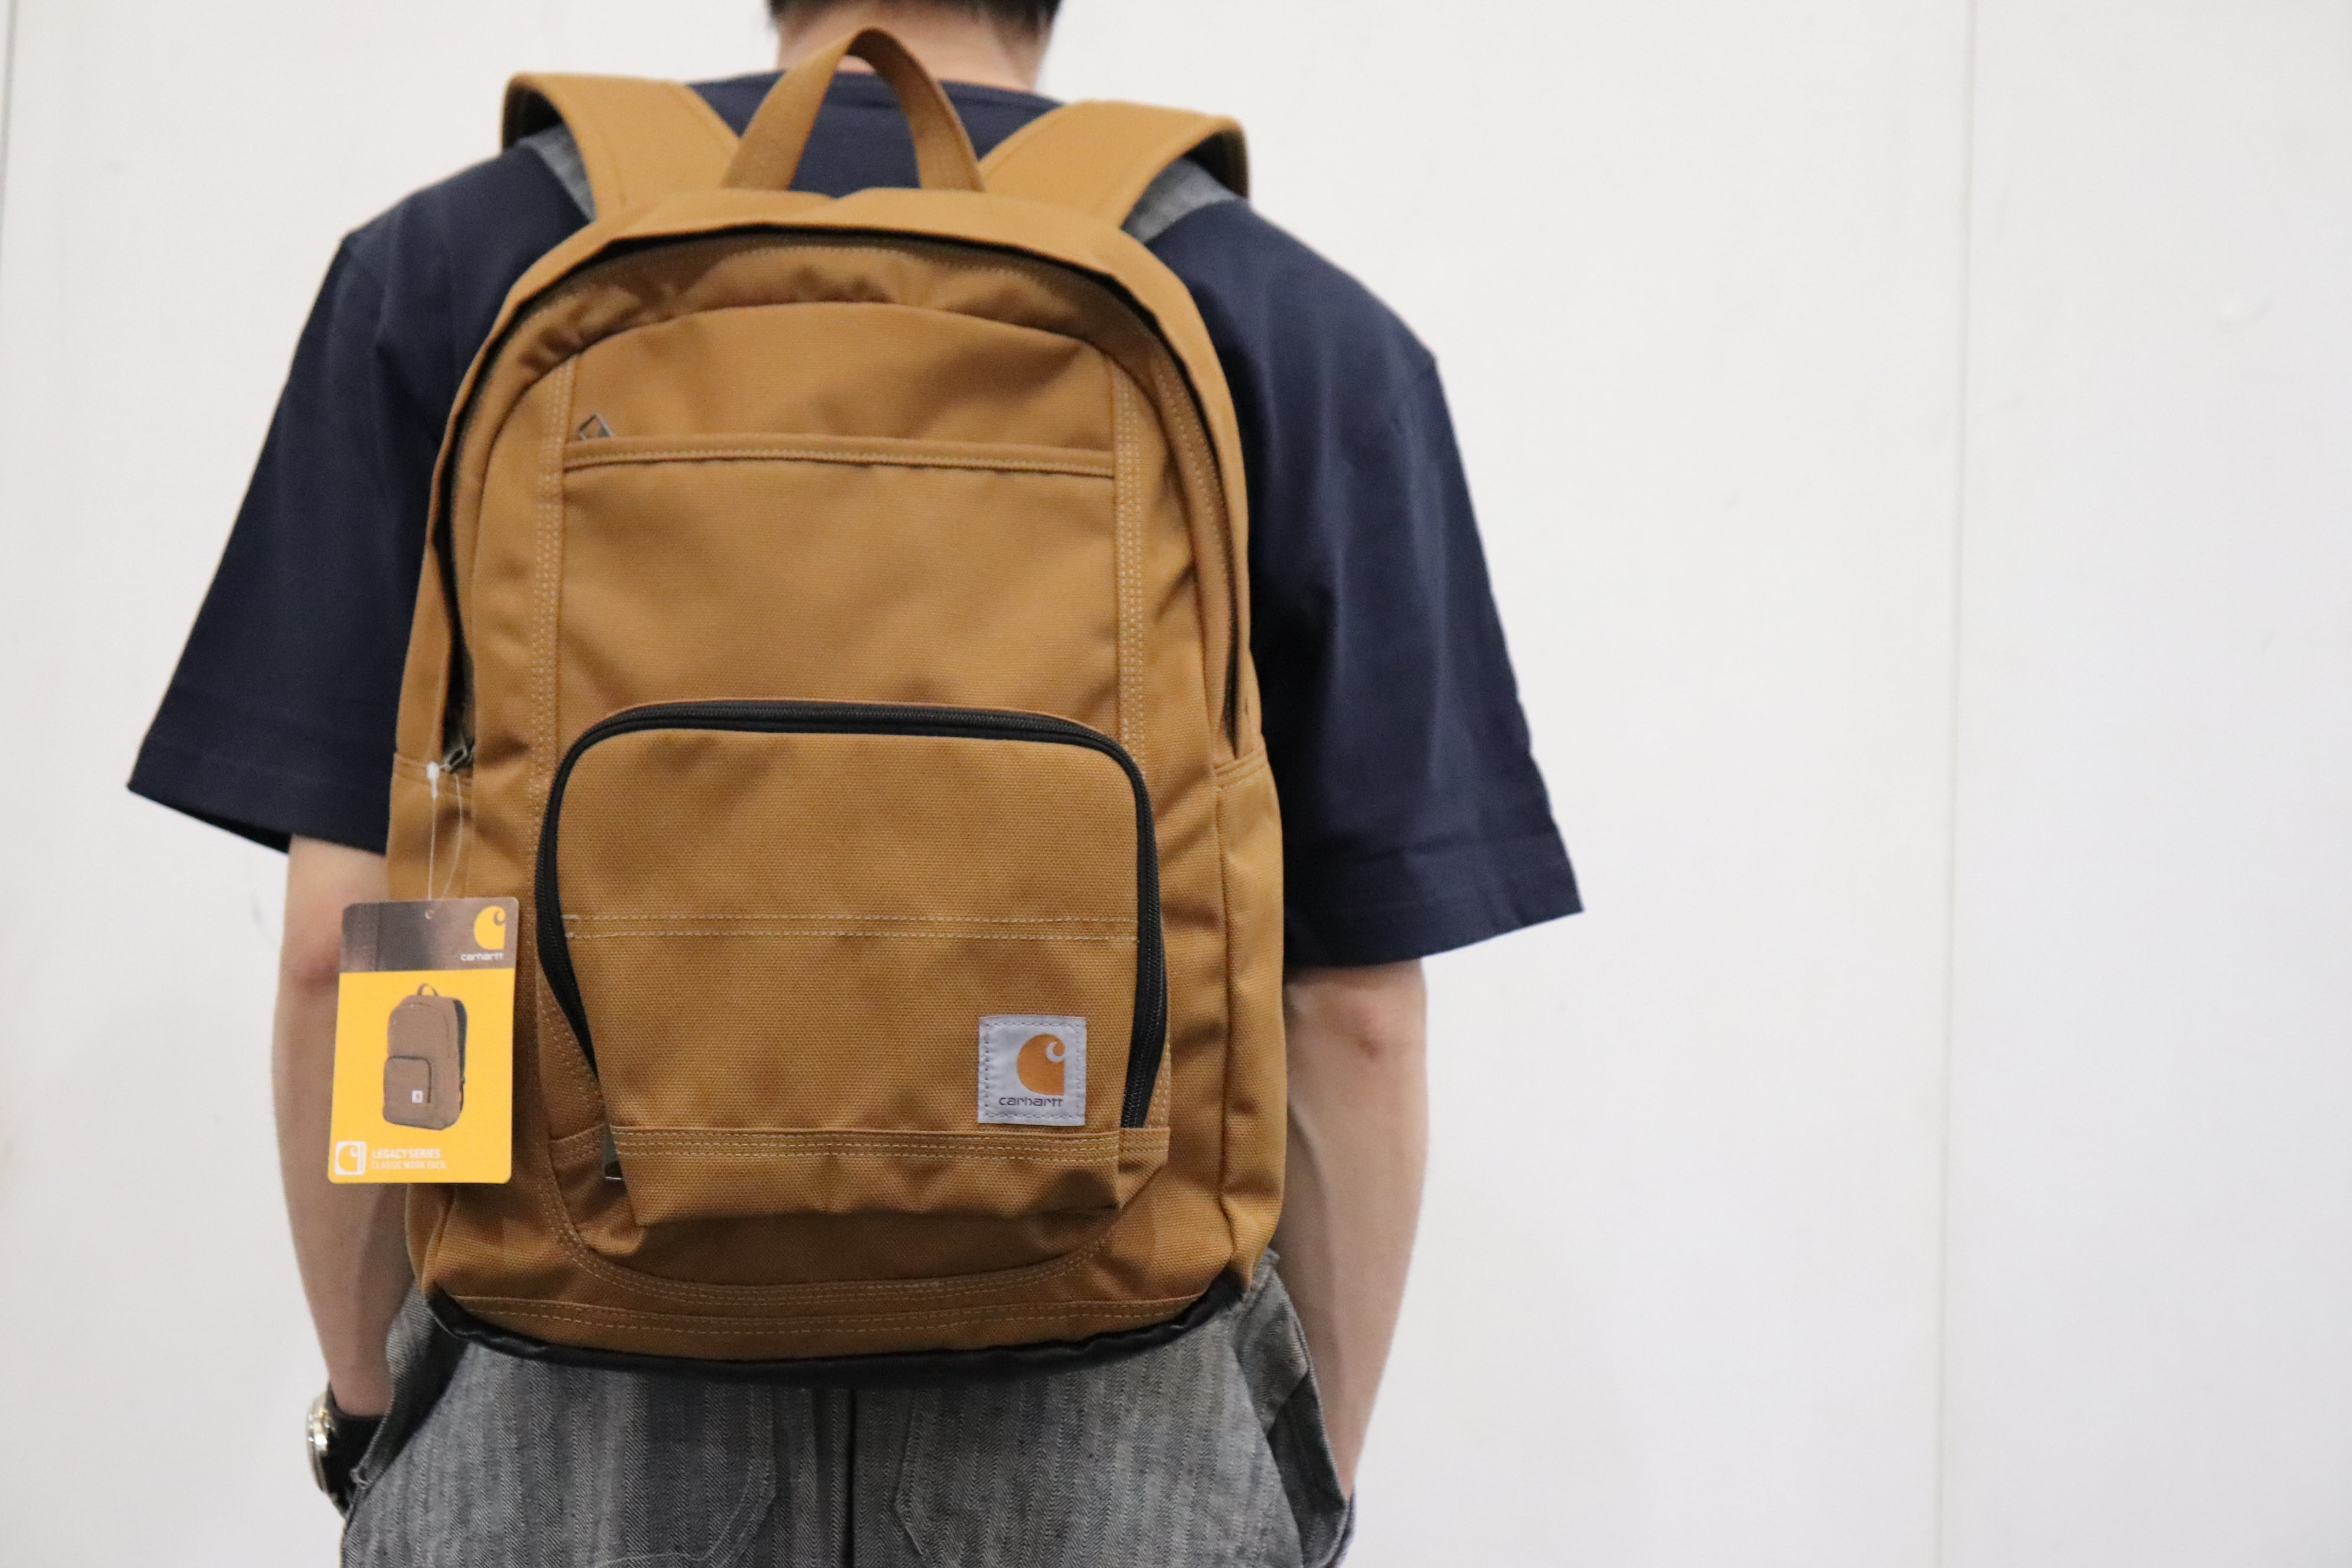 """"""" Carhartt """"  Back Pack  カーハート アメリカ規格 バックパック A781"""